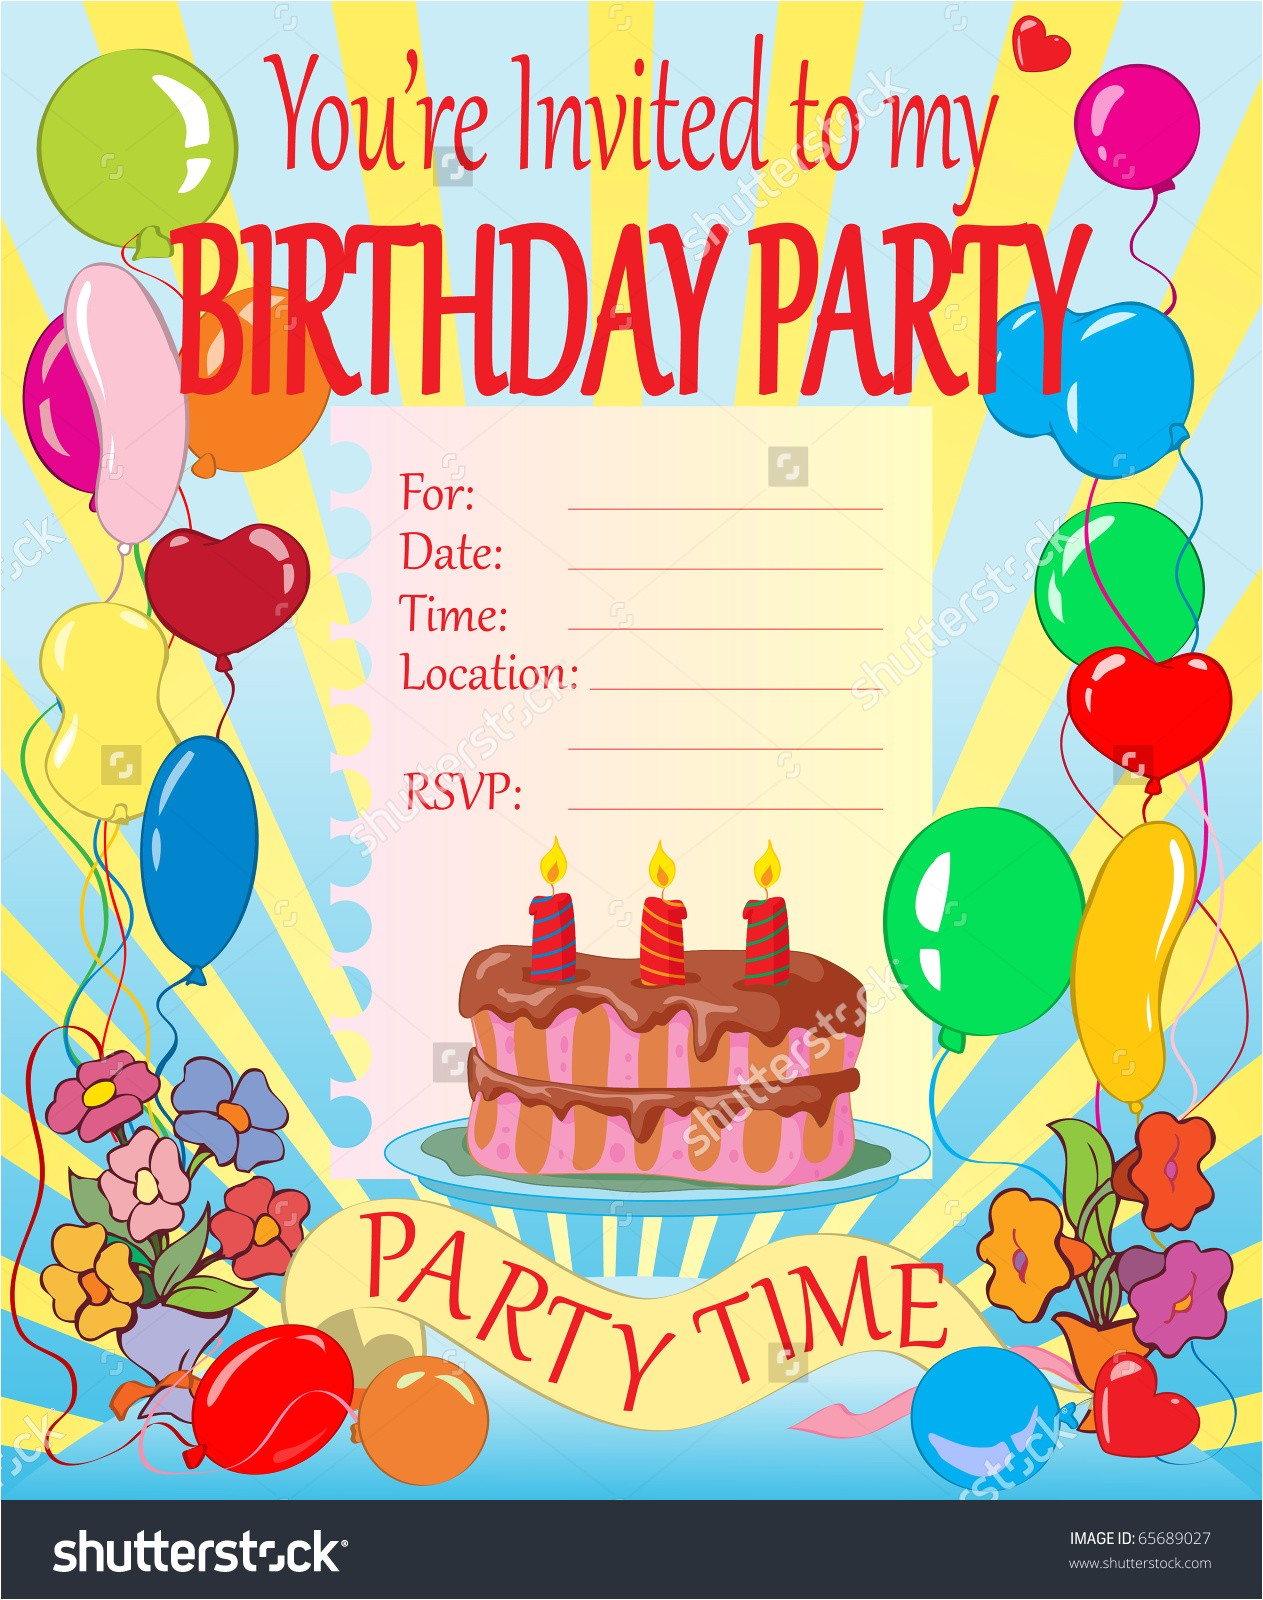 top 19 invitation cards for birthday party